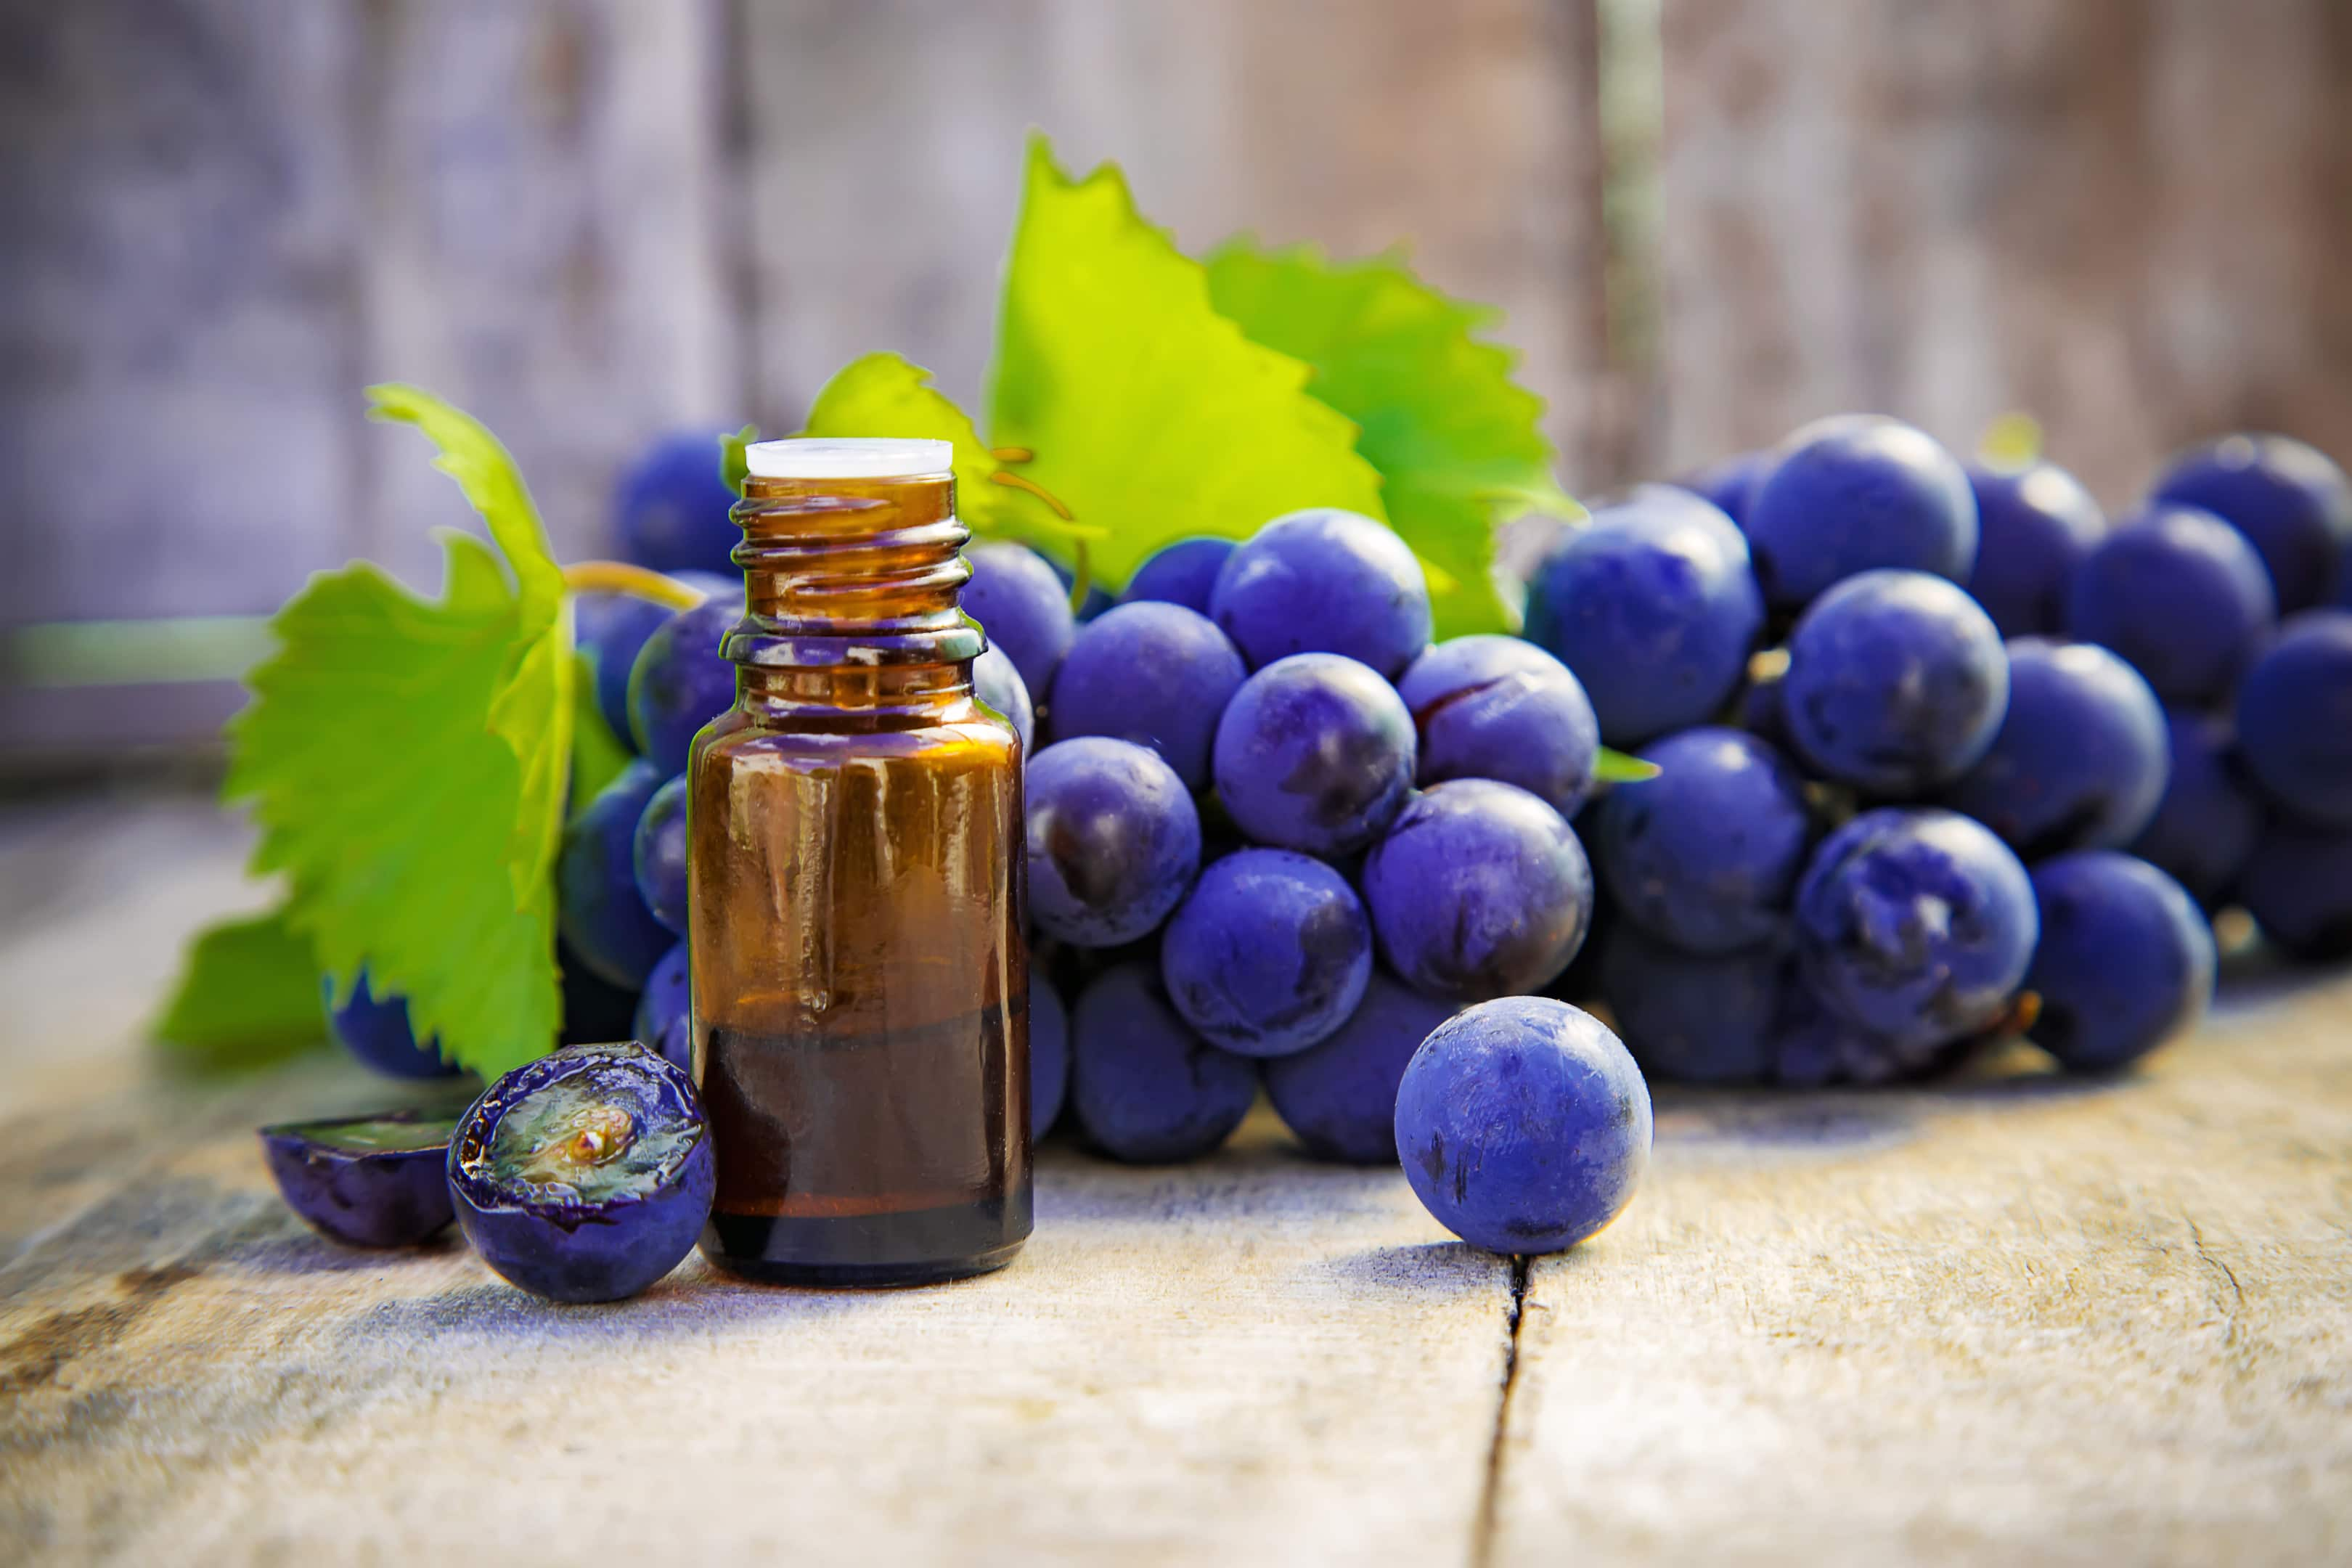 Grape seed extract in a small glass bottle with fresh grapes